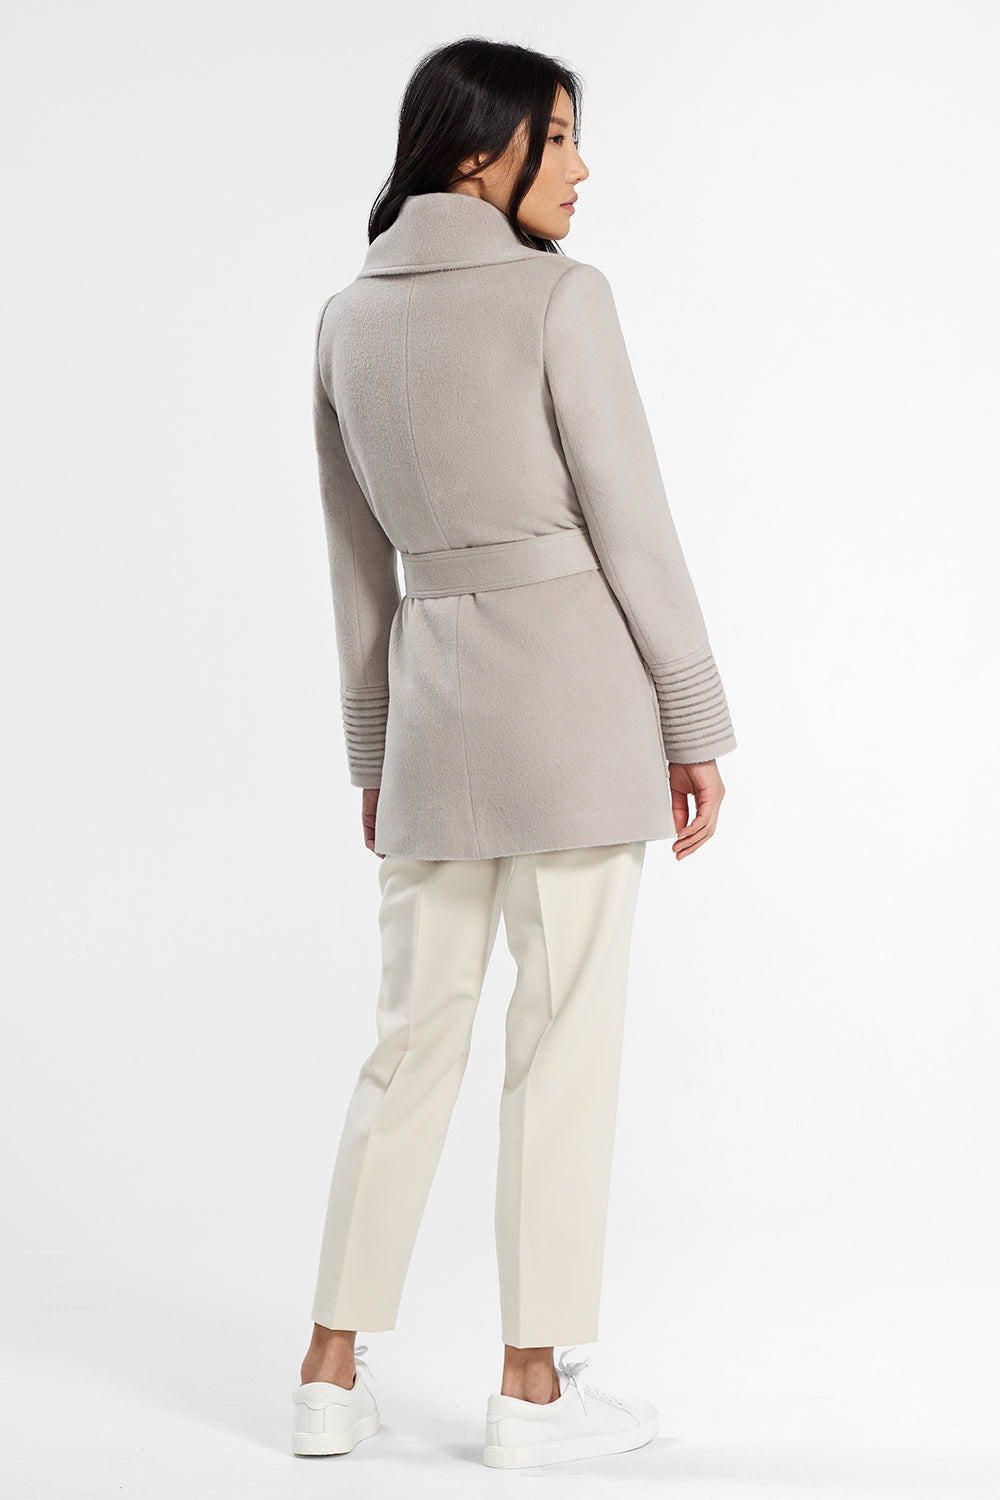 Sentaler Cropped Wide Collar Wrap Coat featured in Baby Alpaca and available in Bleeker Beige. Seen from back.